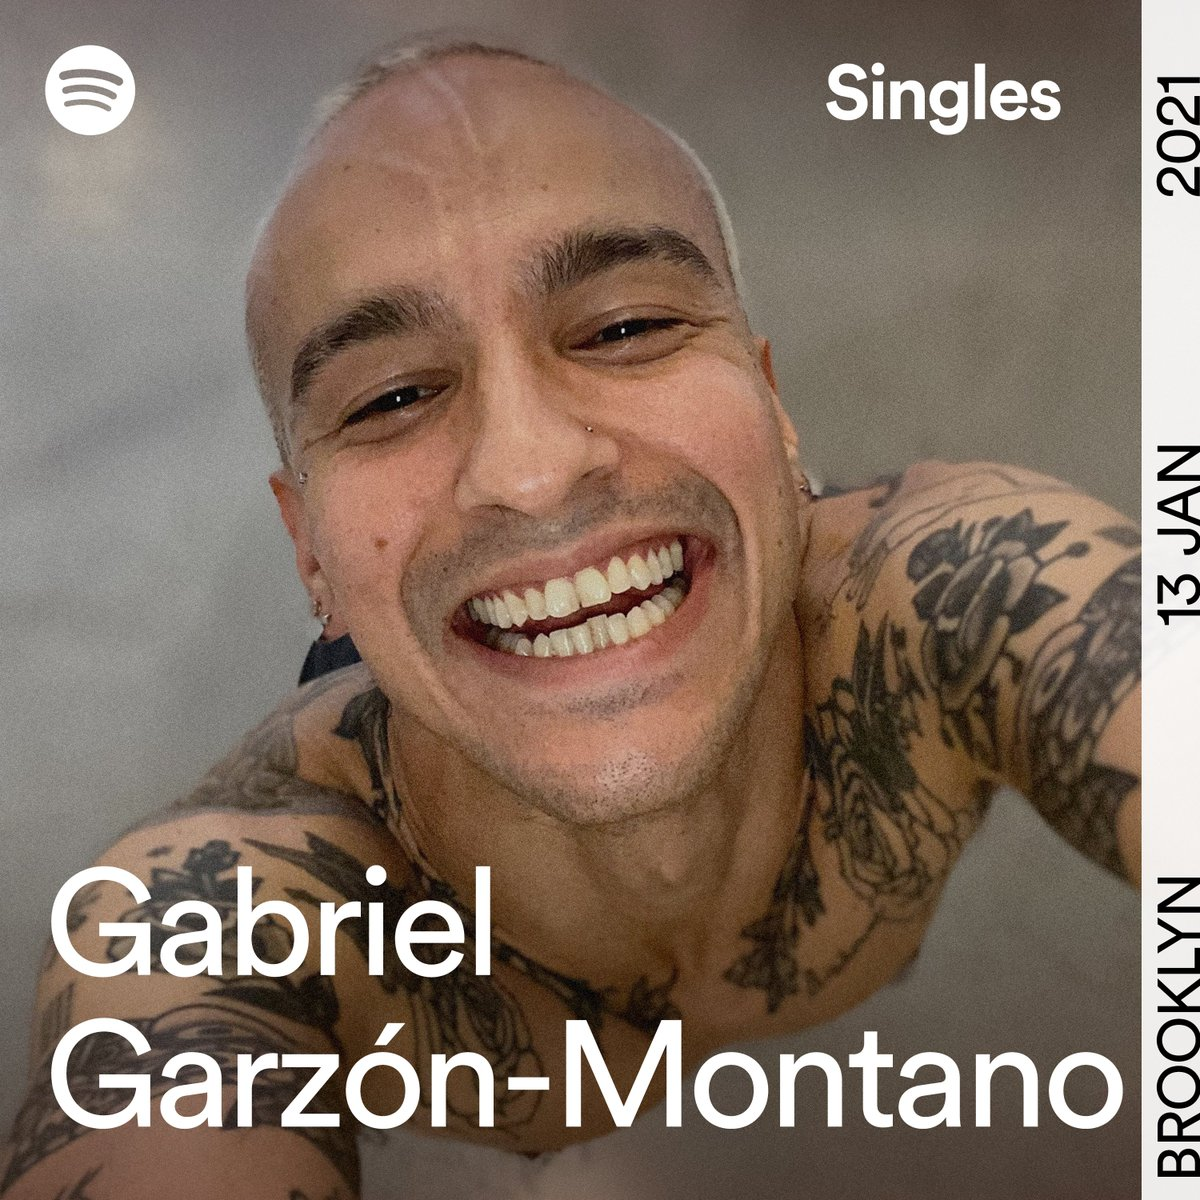 This will put a smile on your face 😀 #GabrielGarzónMontano just gave us two tracks for the latest #SpotifySingles. Turn up the volume on #OOPS and #WithASmile